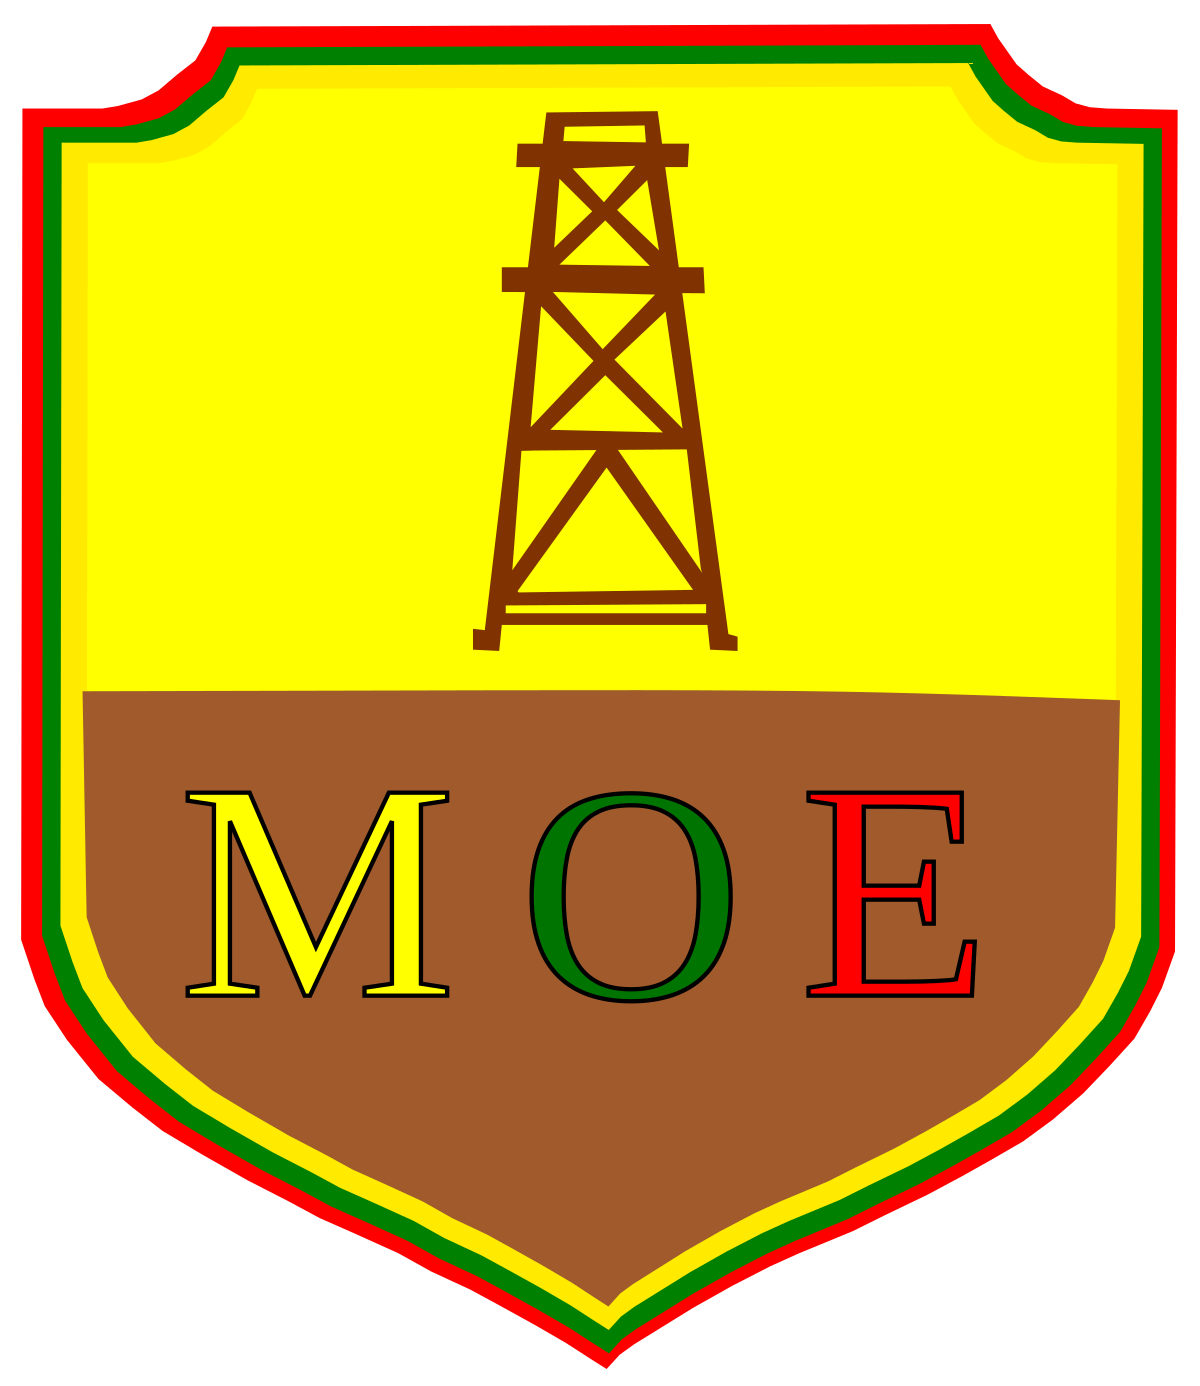 Energy clipart hydrothermal energy. Ministry of myanmar wikipedia